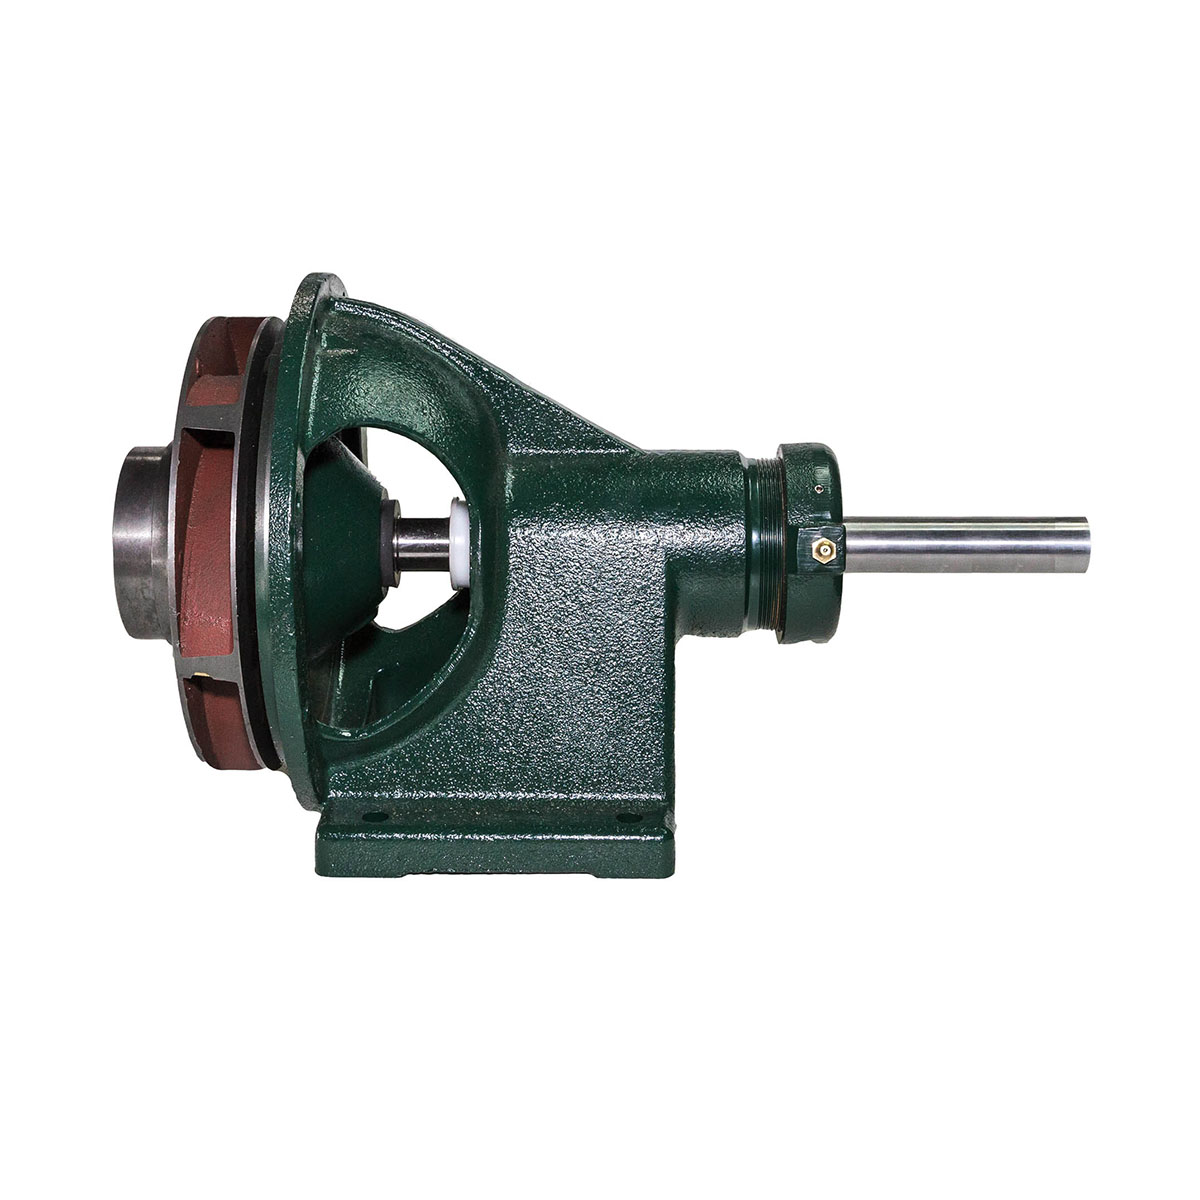 Buy B3Z-S Mech Seal Power Frame (CW) online at Access Truck Parts